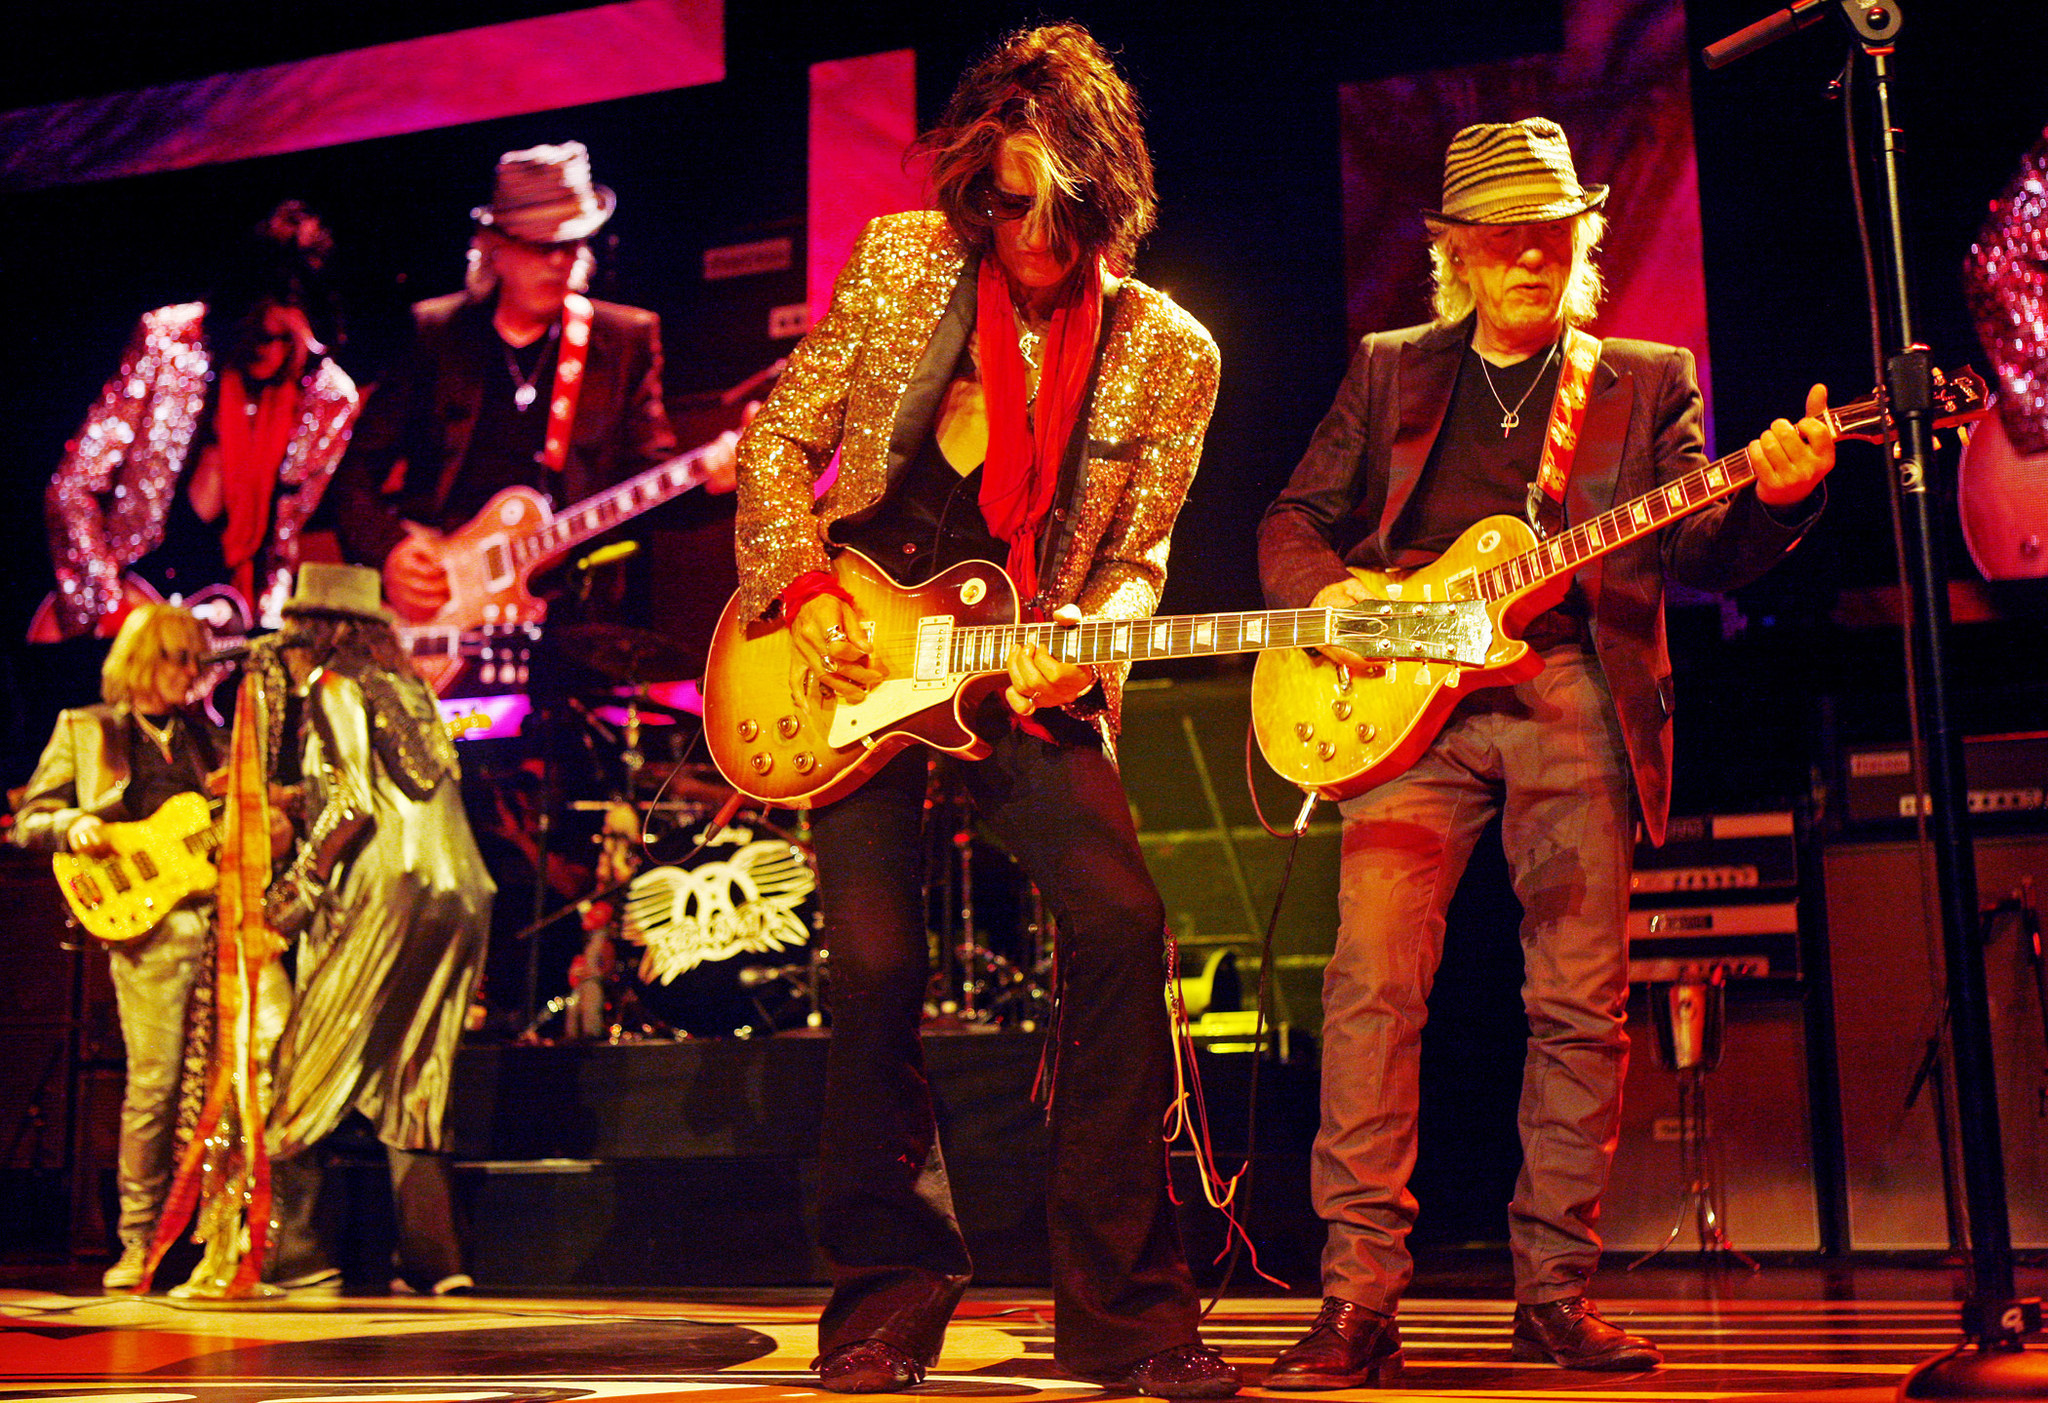 Stage 3 Performance >> Interviewing Aerosmith: Classic band says new concert ...